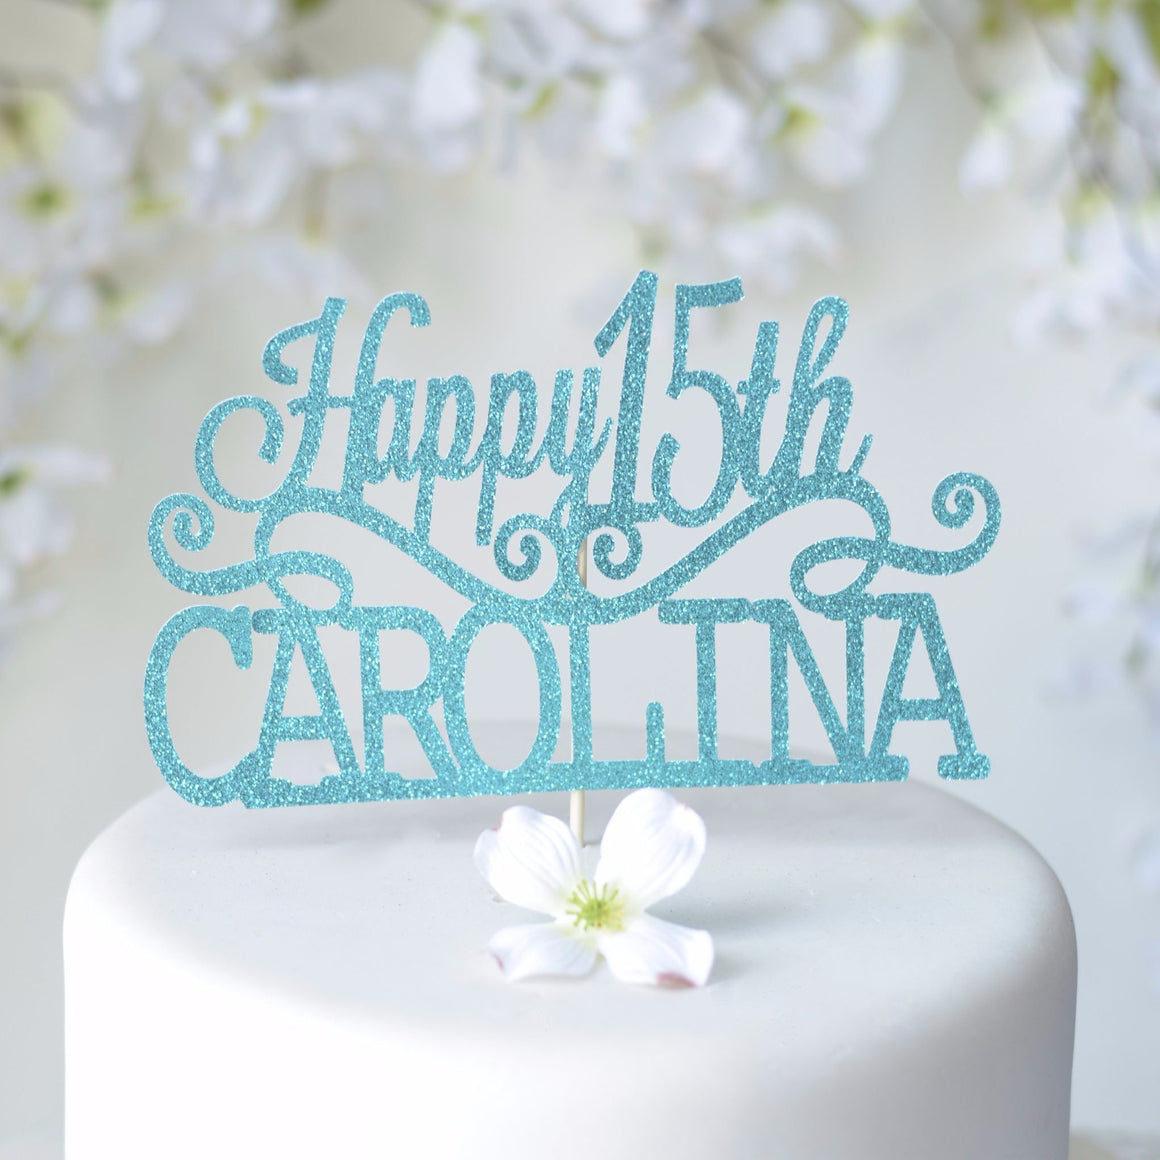 Happy 15th Carolina Quinceañera cake topper with blue and teal sparkles